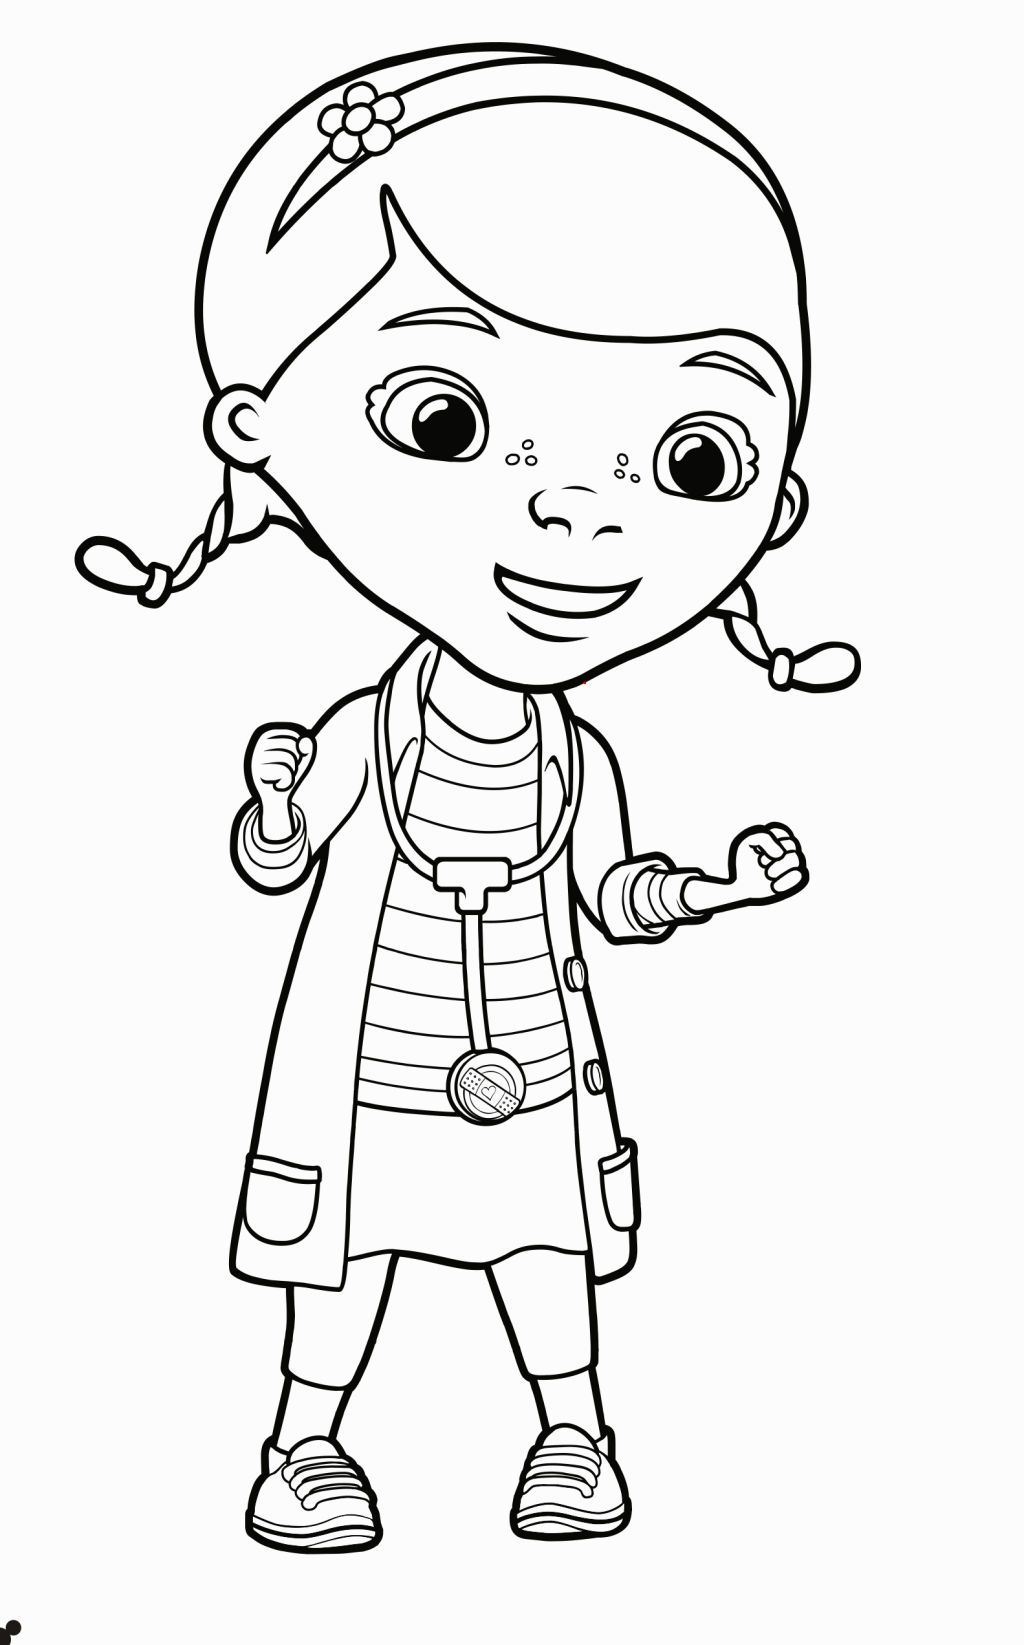 Coloring pages for doc mcstuffins - Doc Mcstuffins Coloring Sheet